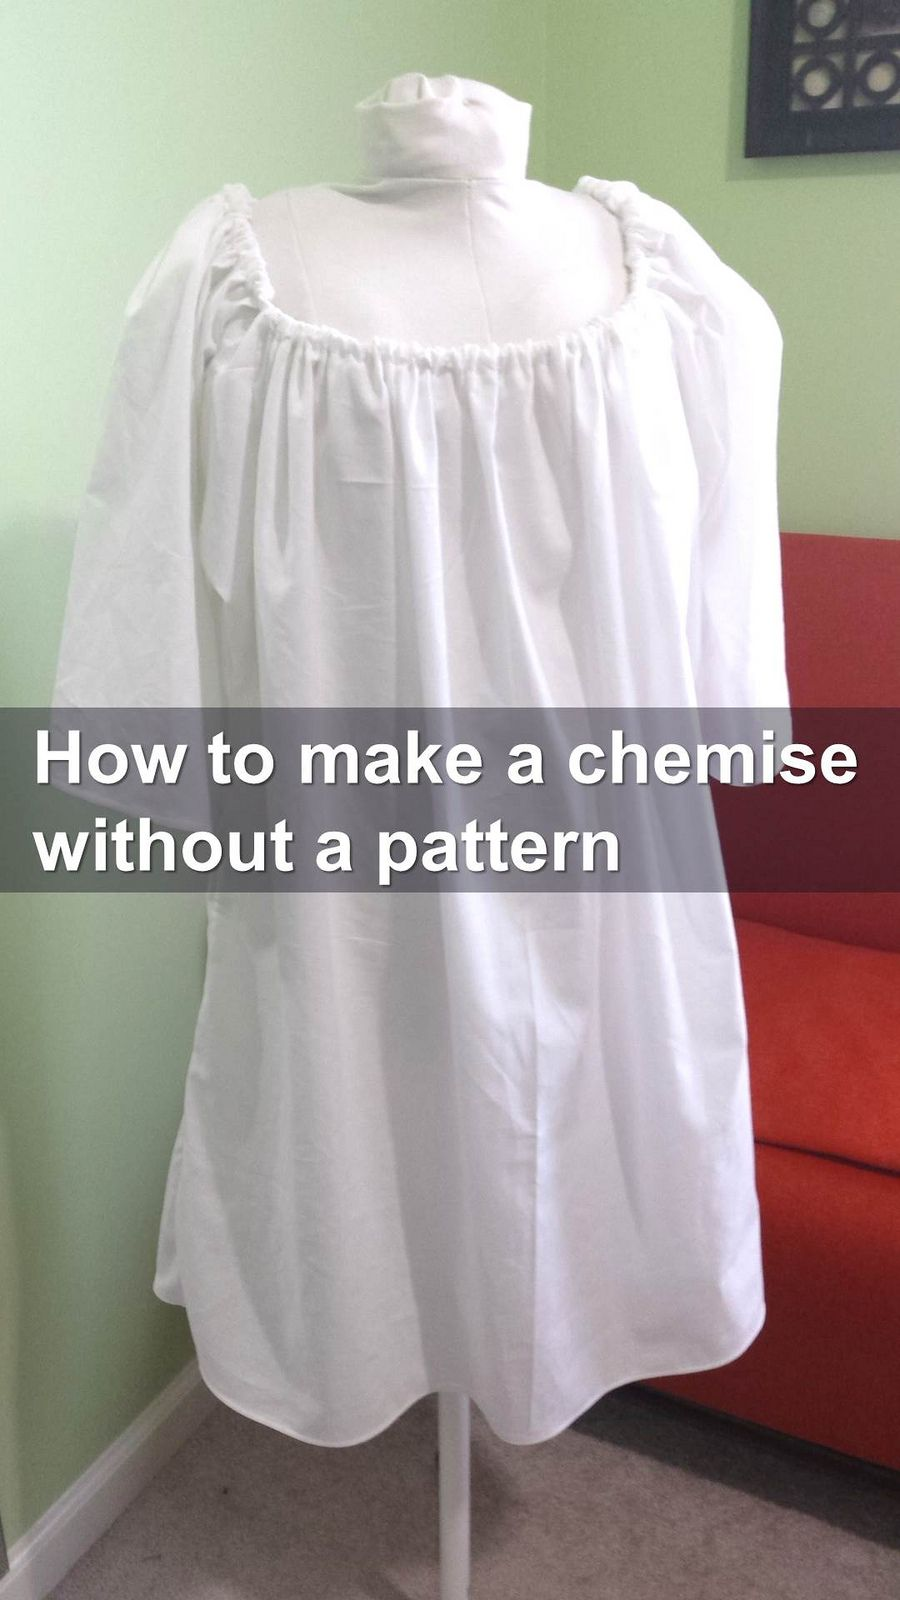 Easy Diy Sewing Tutorial For A Simple Chemise Made Of Only Three Yards Of 36 U0026quot  Wide Fabric  Fits